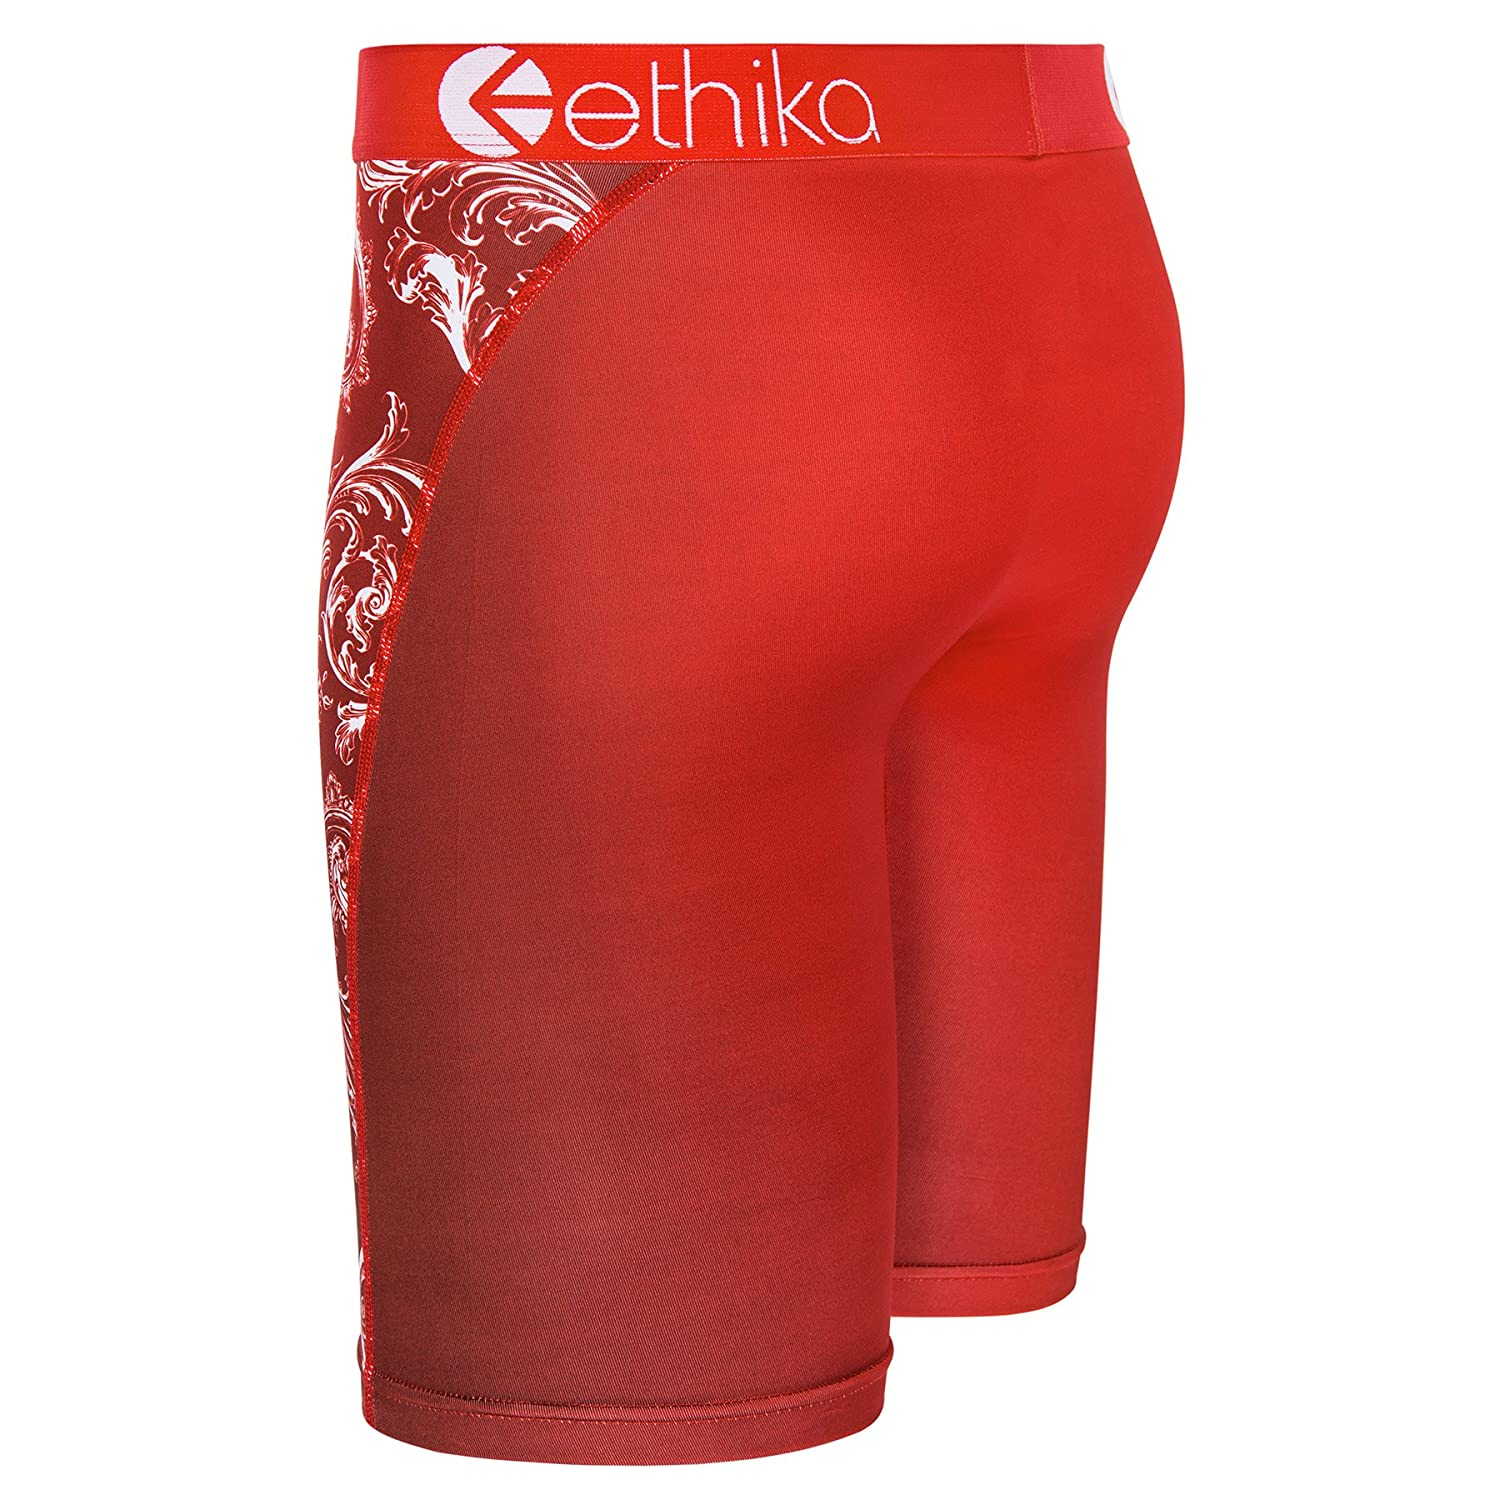 Ethika Mens Royal Red The Staple Fit Boxer Briefs Large